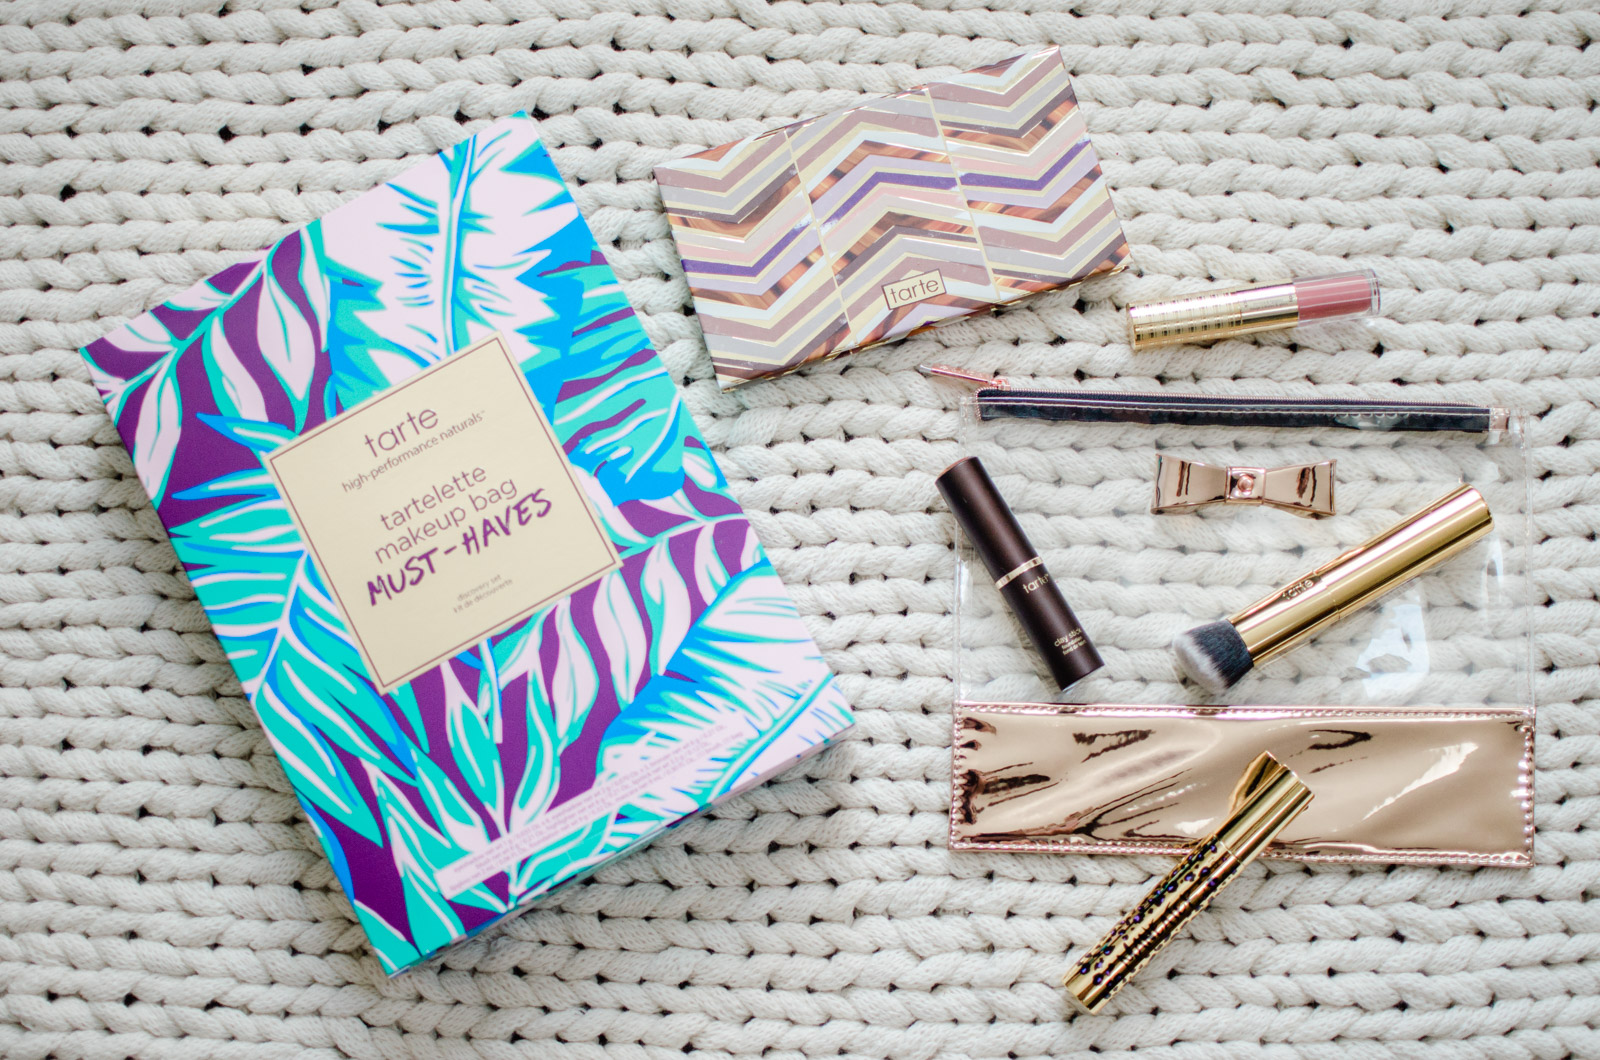 tarte makeup must-haves - sharing my five minute face makeup routine with tarte | bylaurenm.com